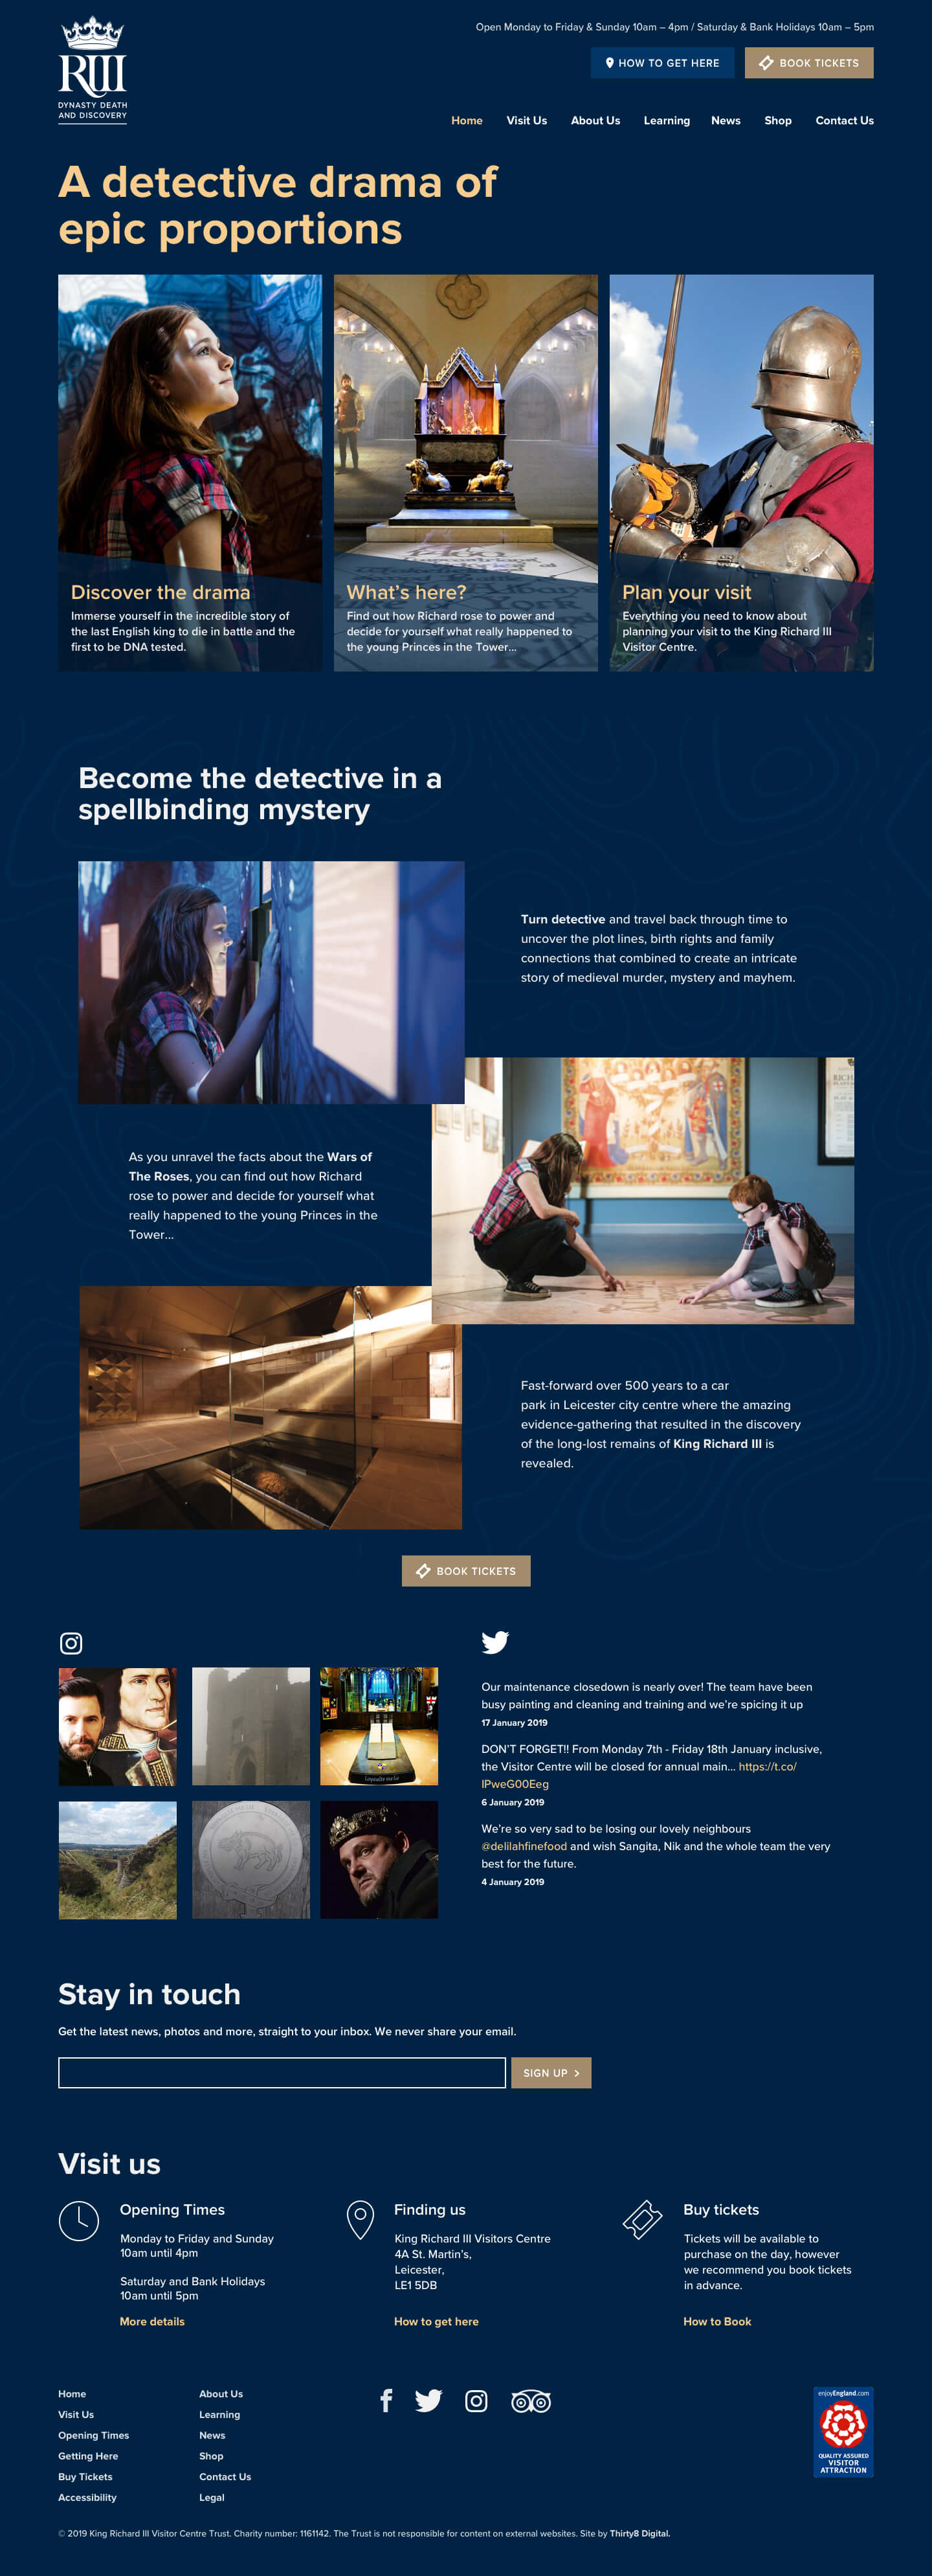 KRIII homepage design